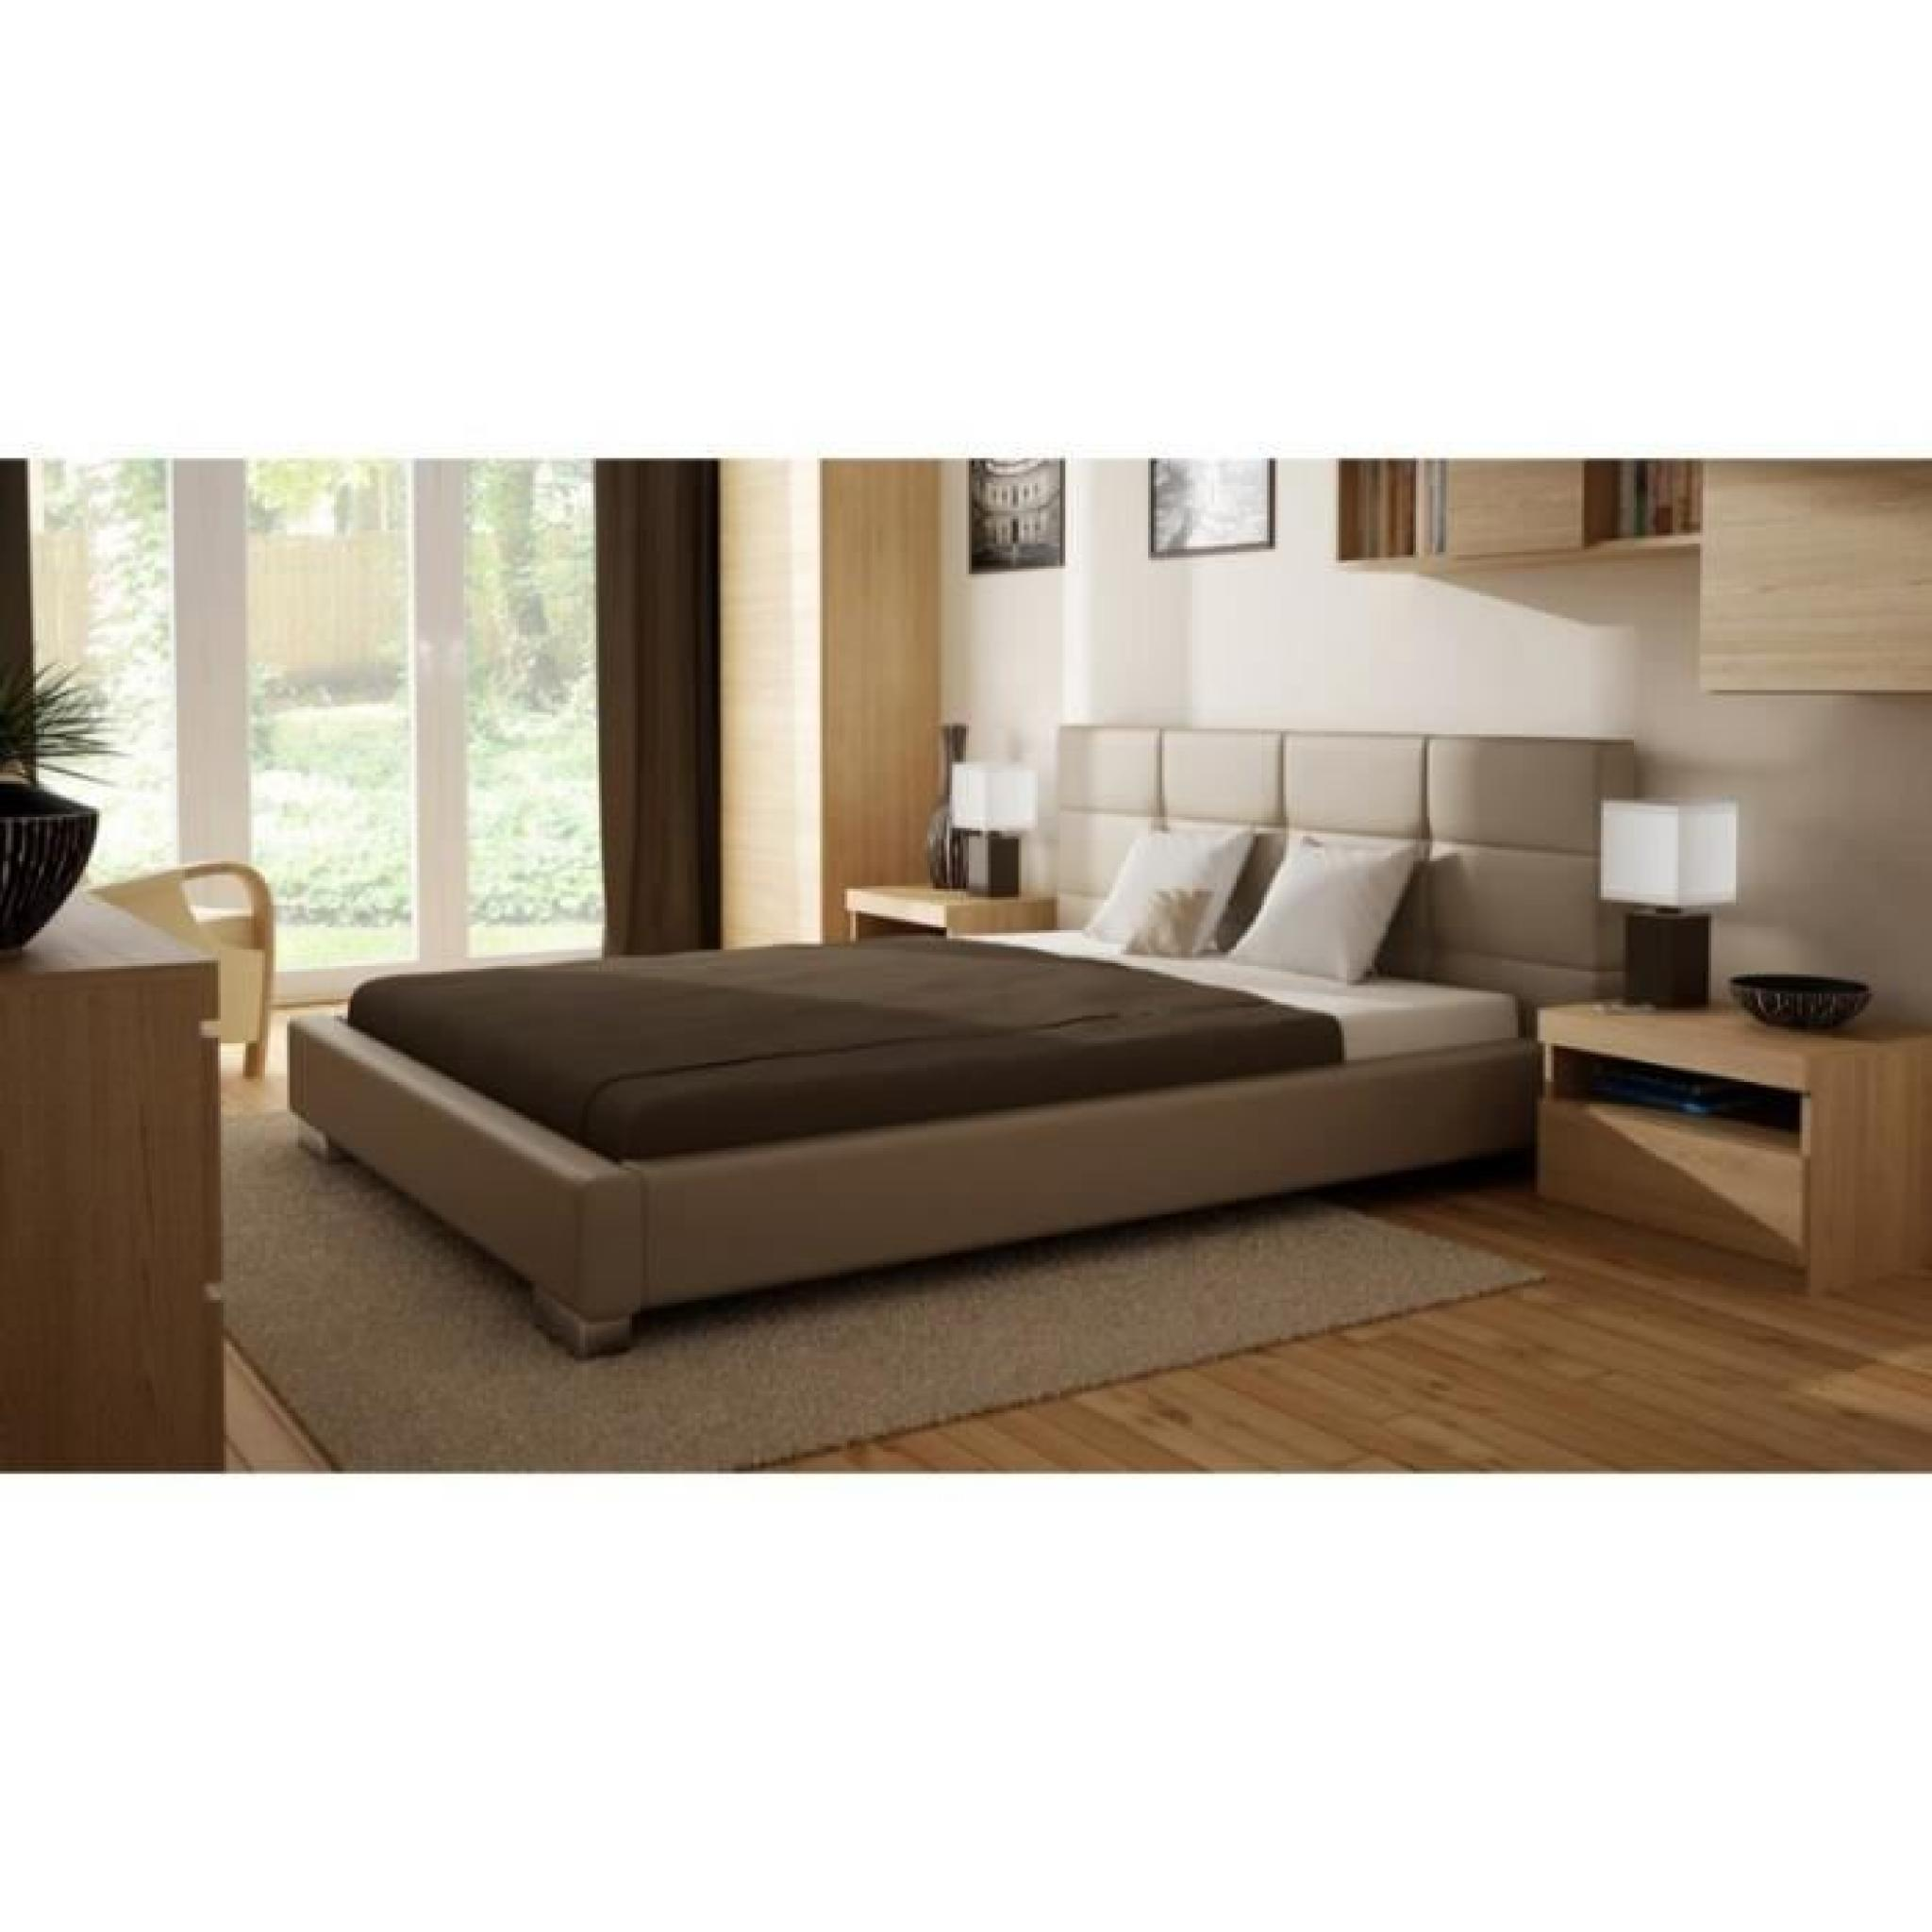 justhome edoardo lit en cuir cologique beige 160 x 200 cm achat vente lit pas cher couleur. Black Bedroom Furniture Sets. Home Design Ideas